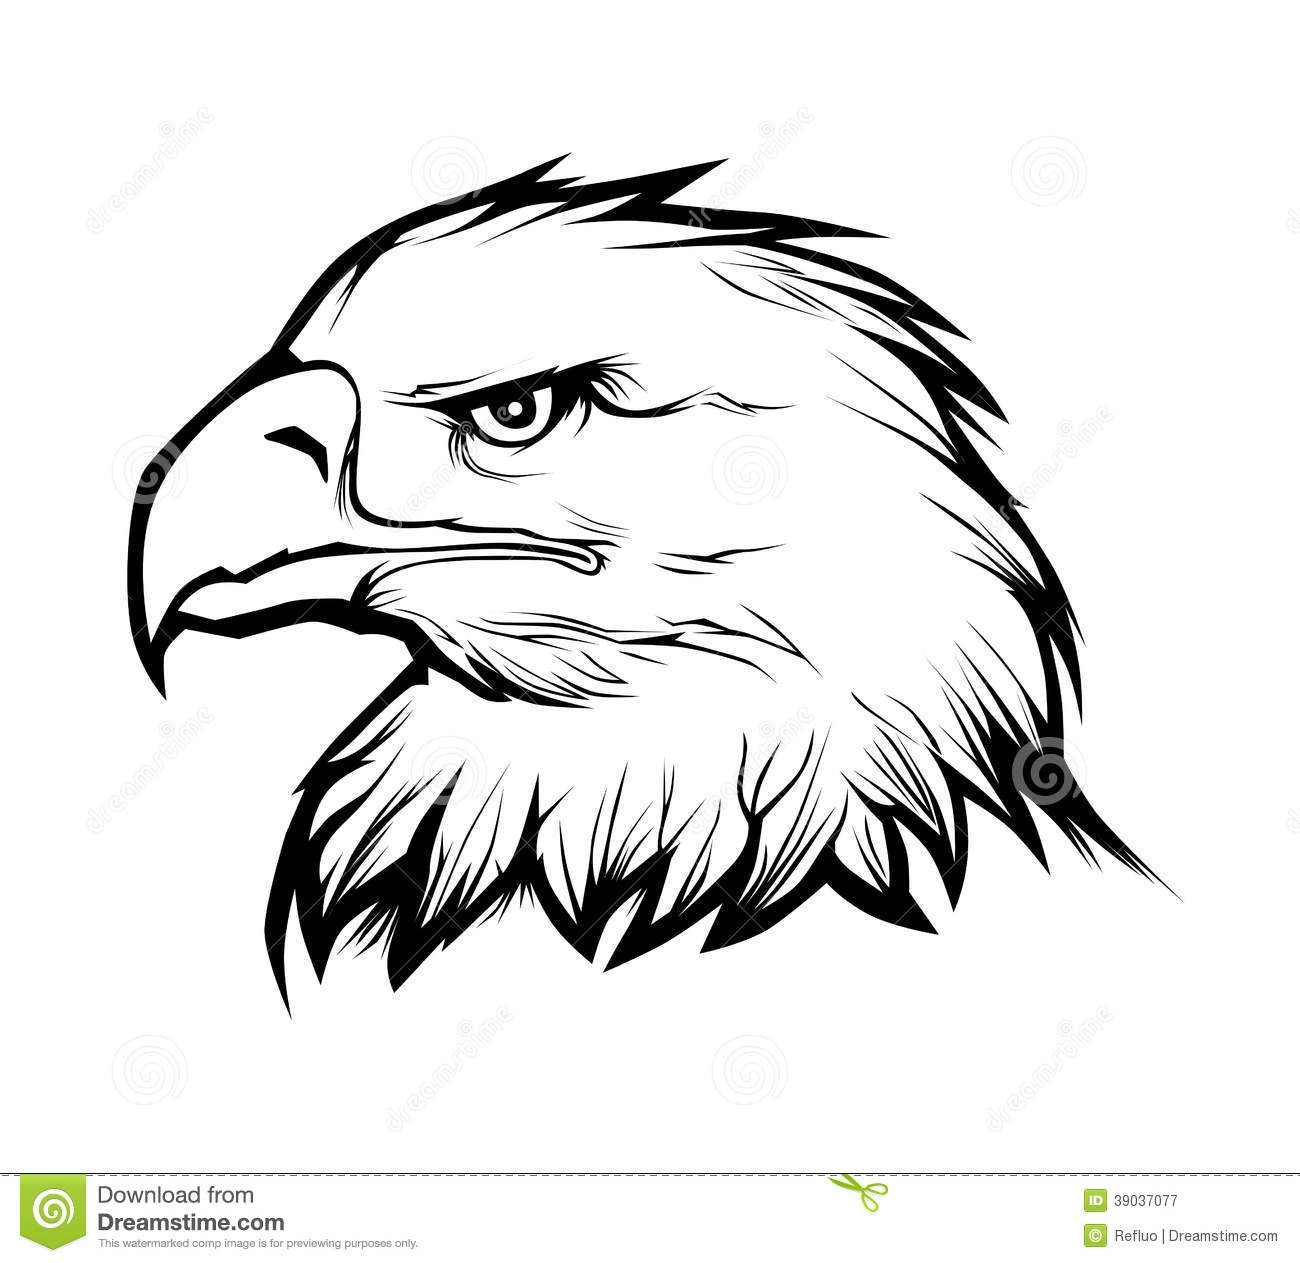 Realistic eagle head black and white vector illustration